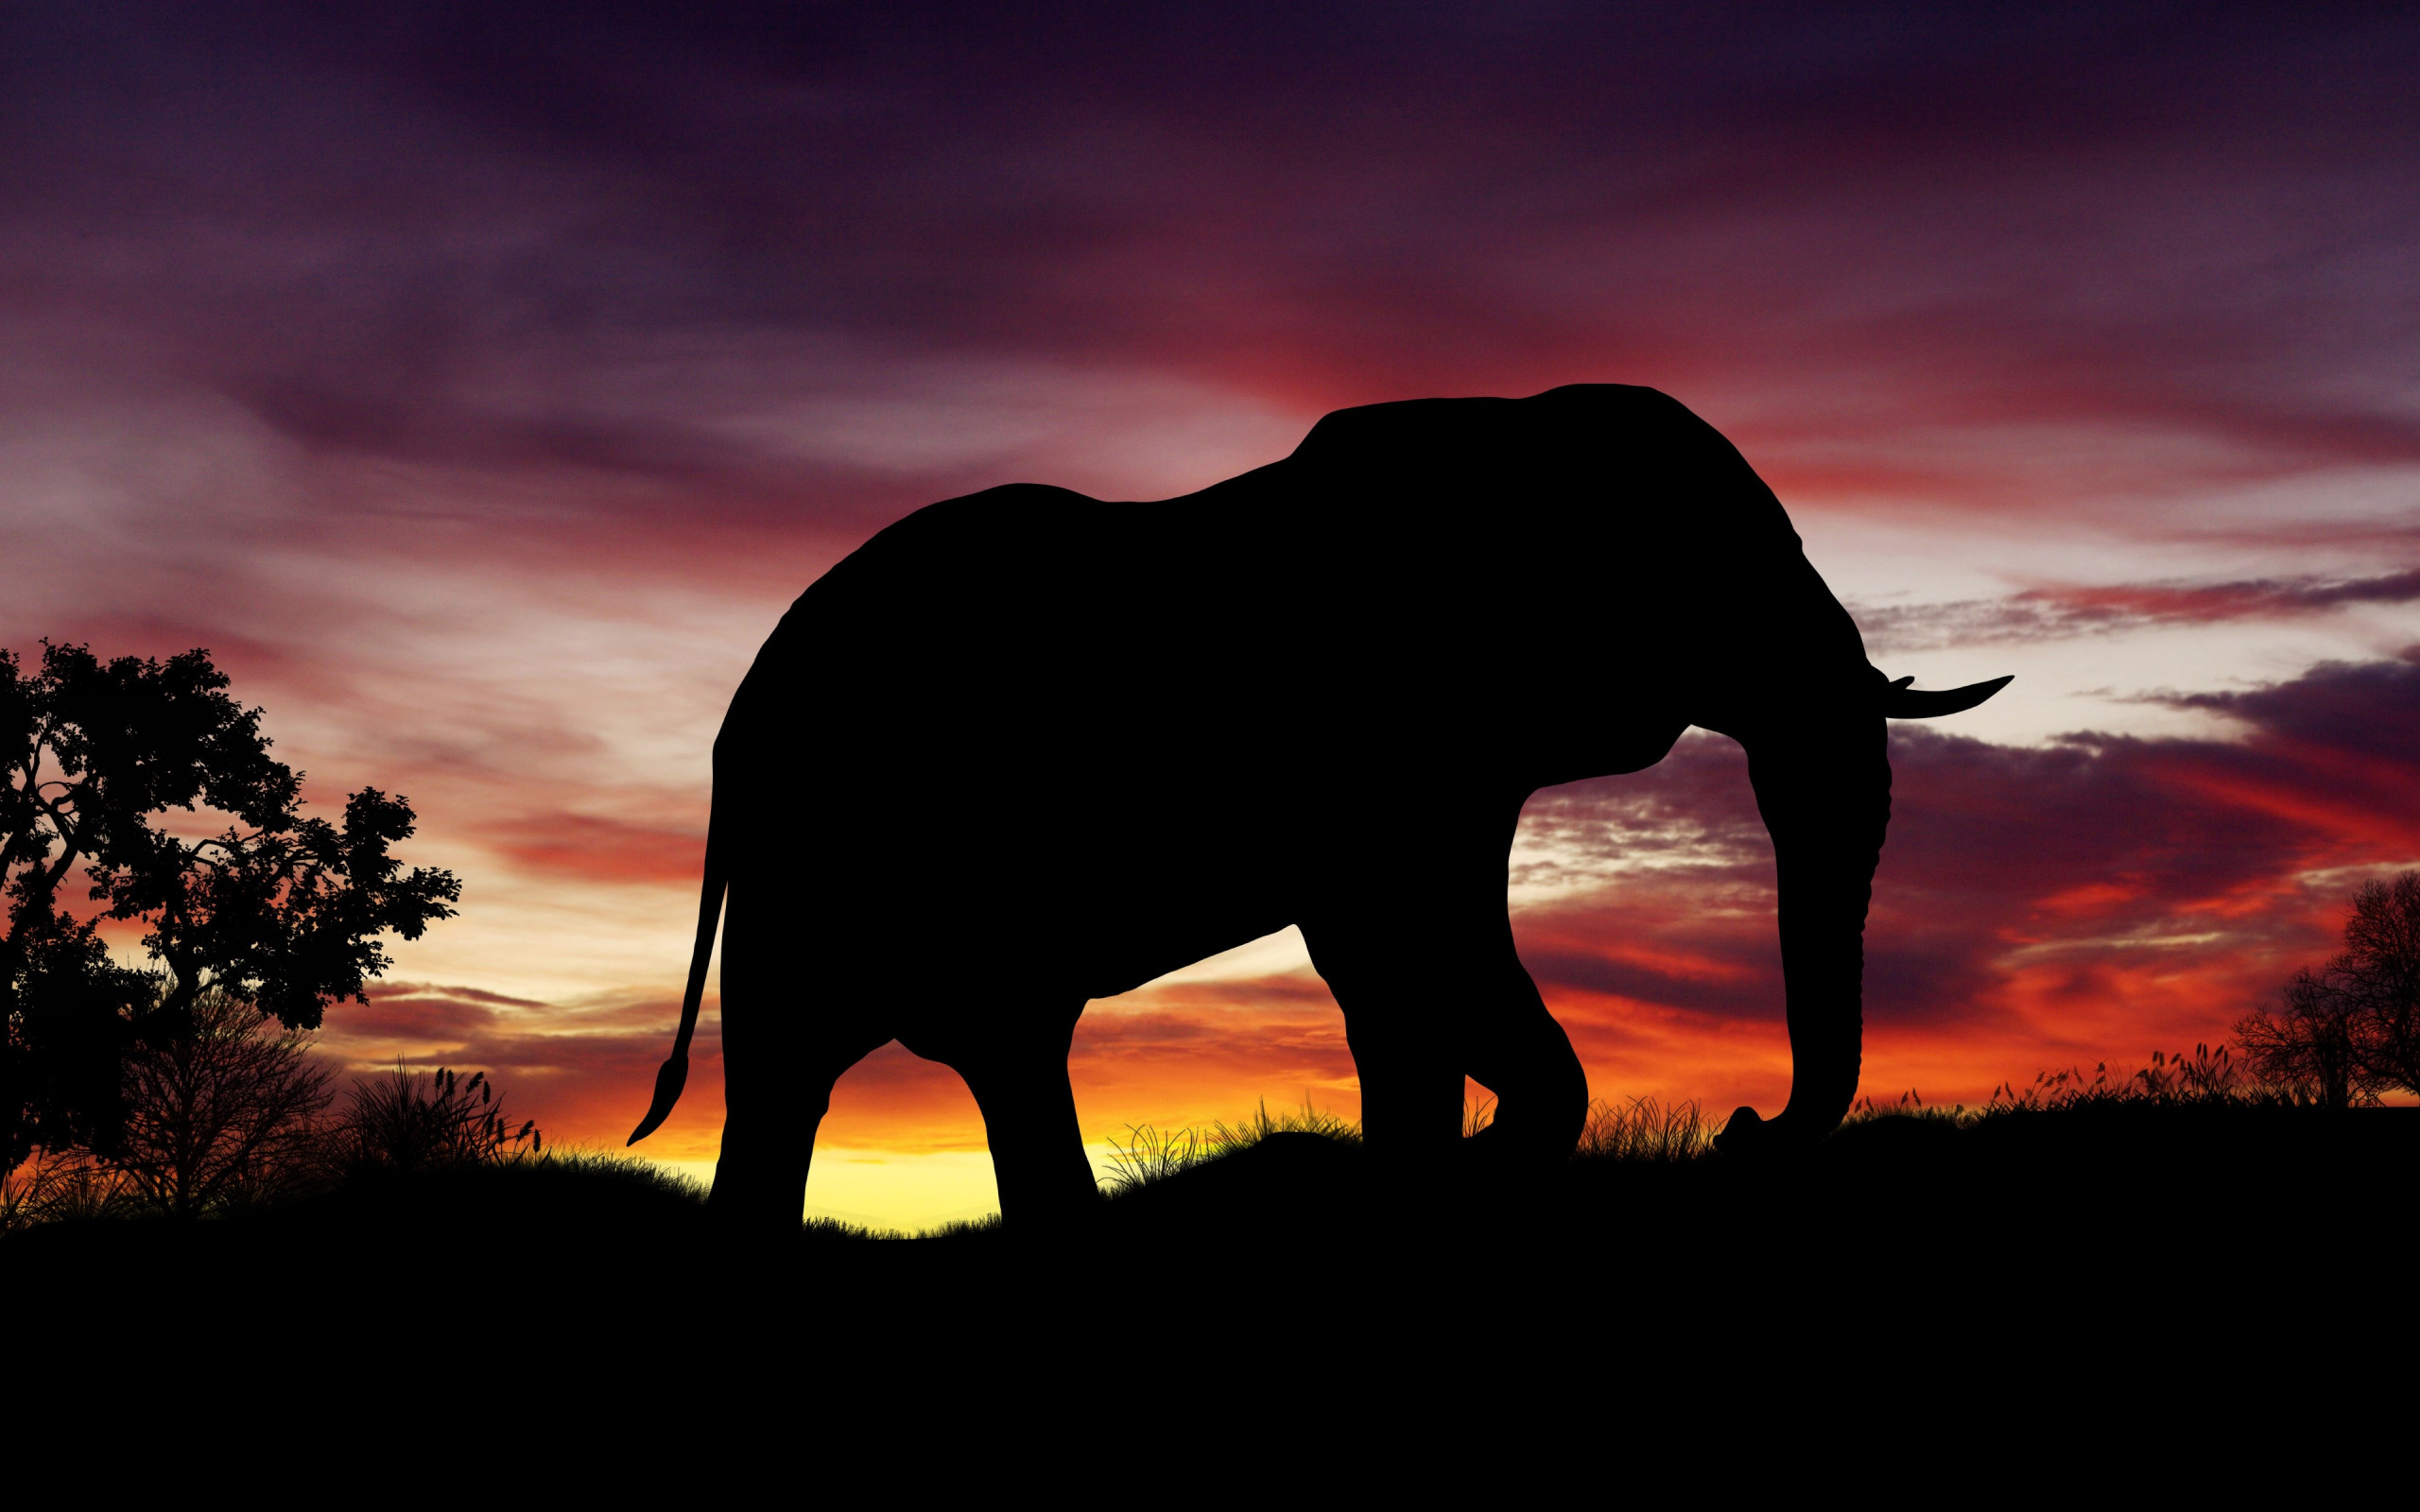 Elephant silhouette | 2560x1600 wallpaper